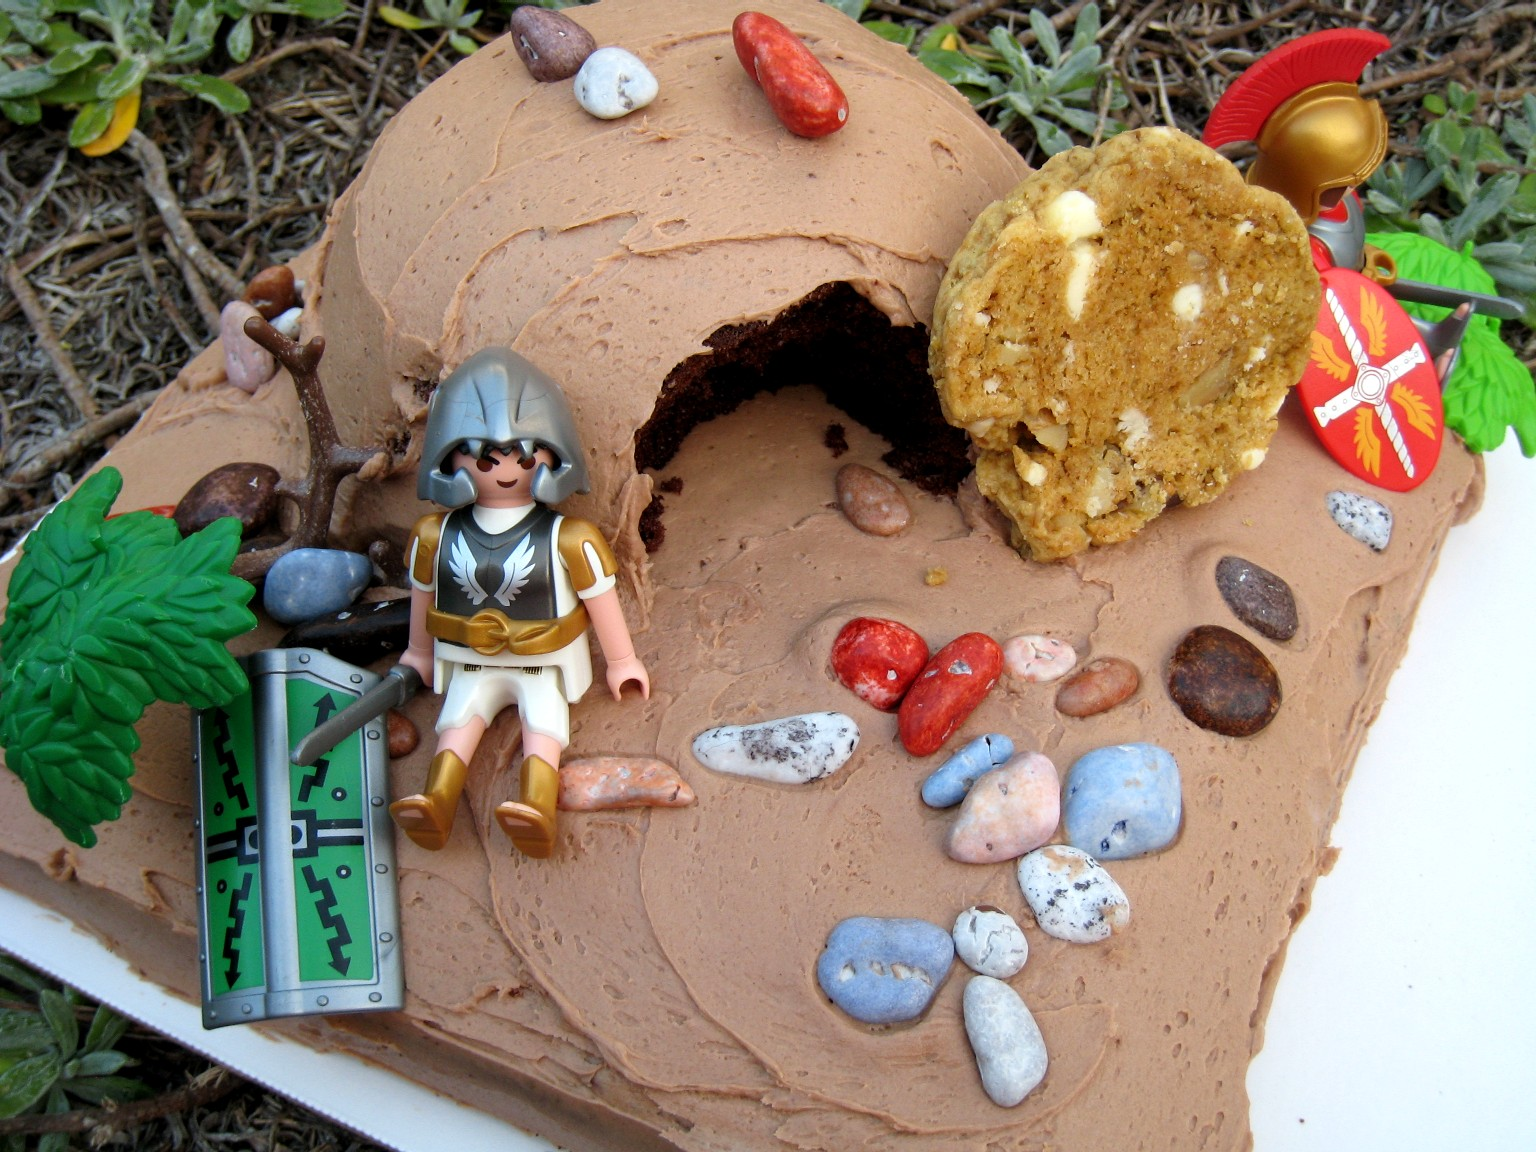 decorated empty tomb cake with candy rocks and plastic soldiers